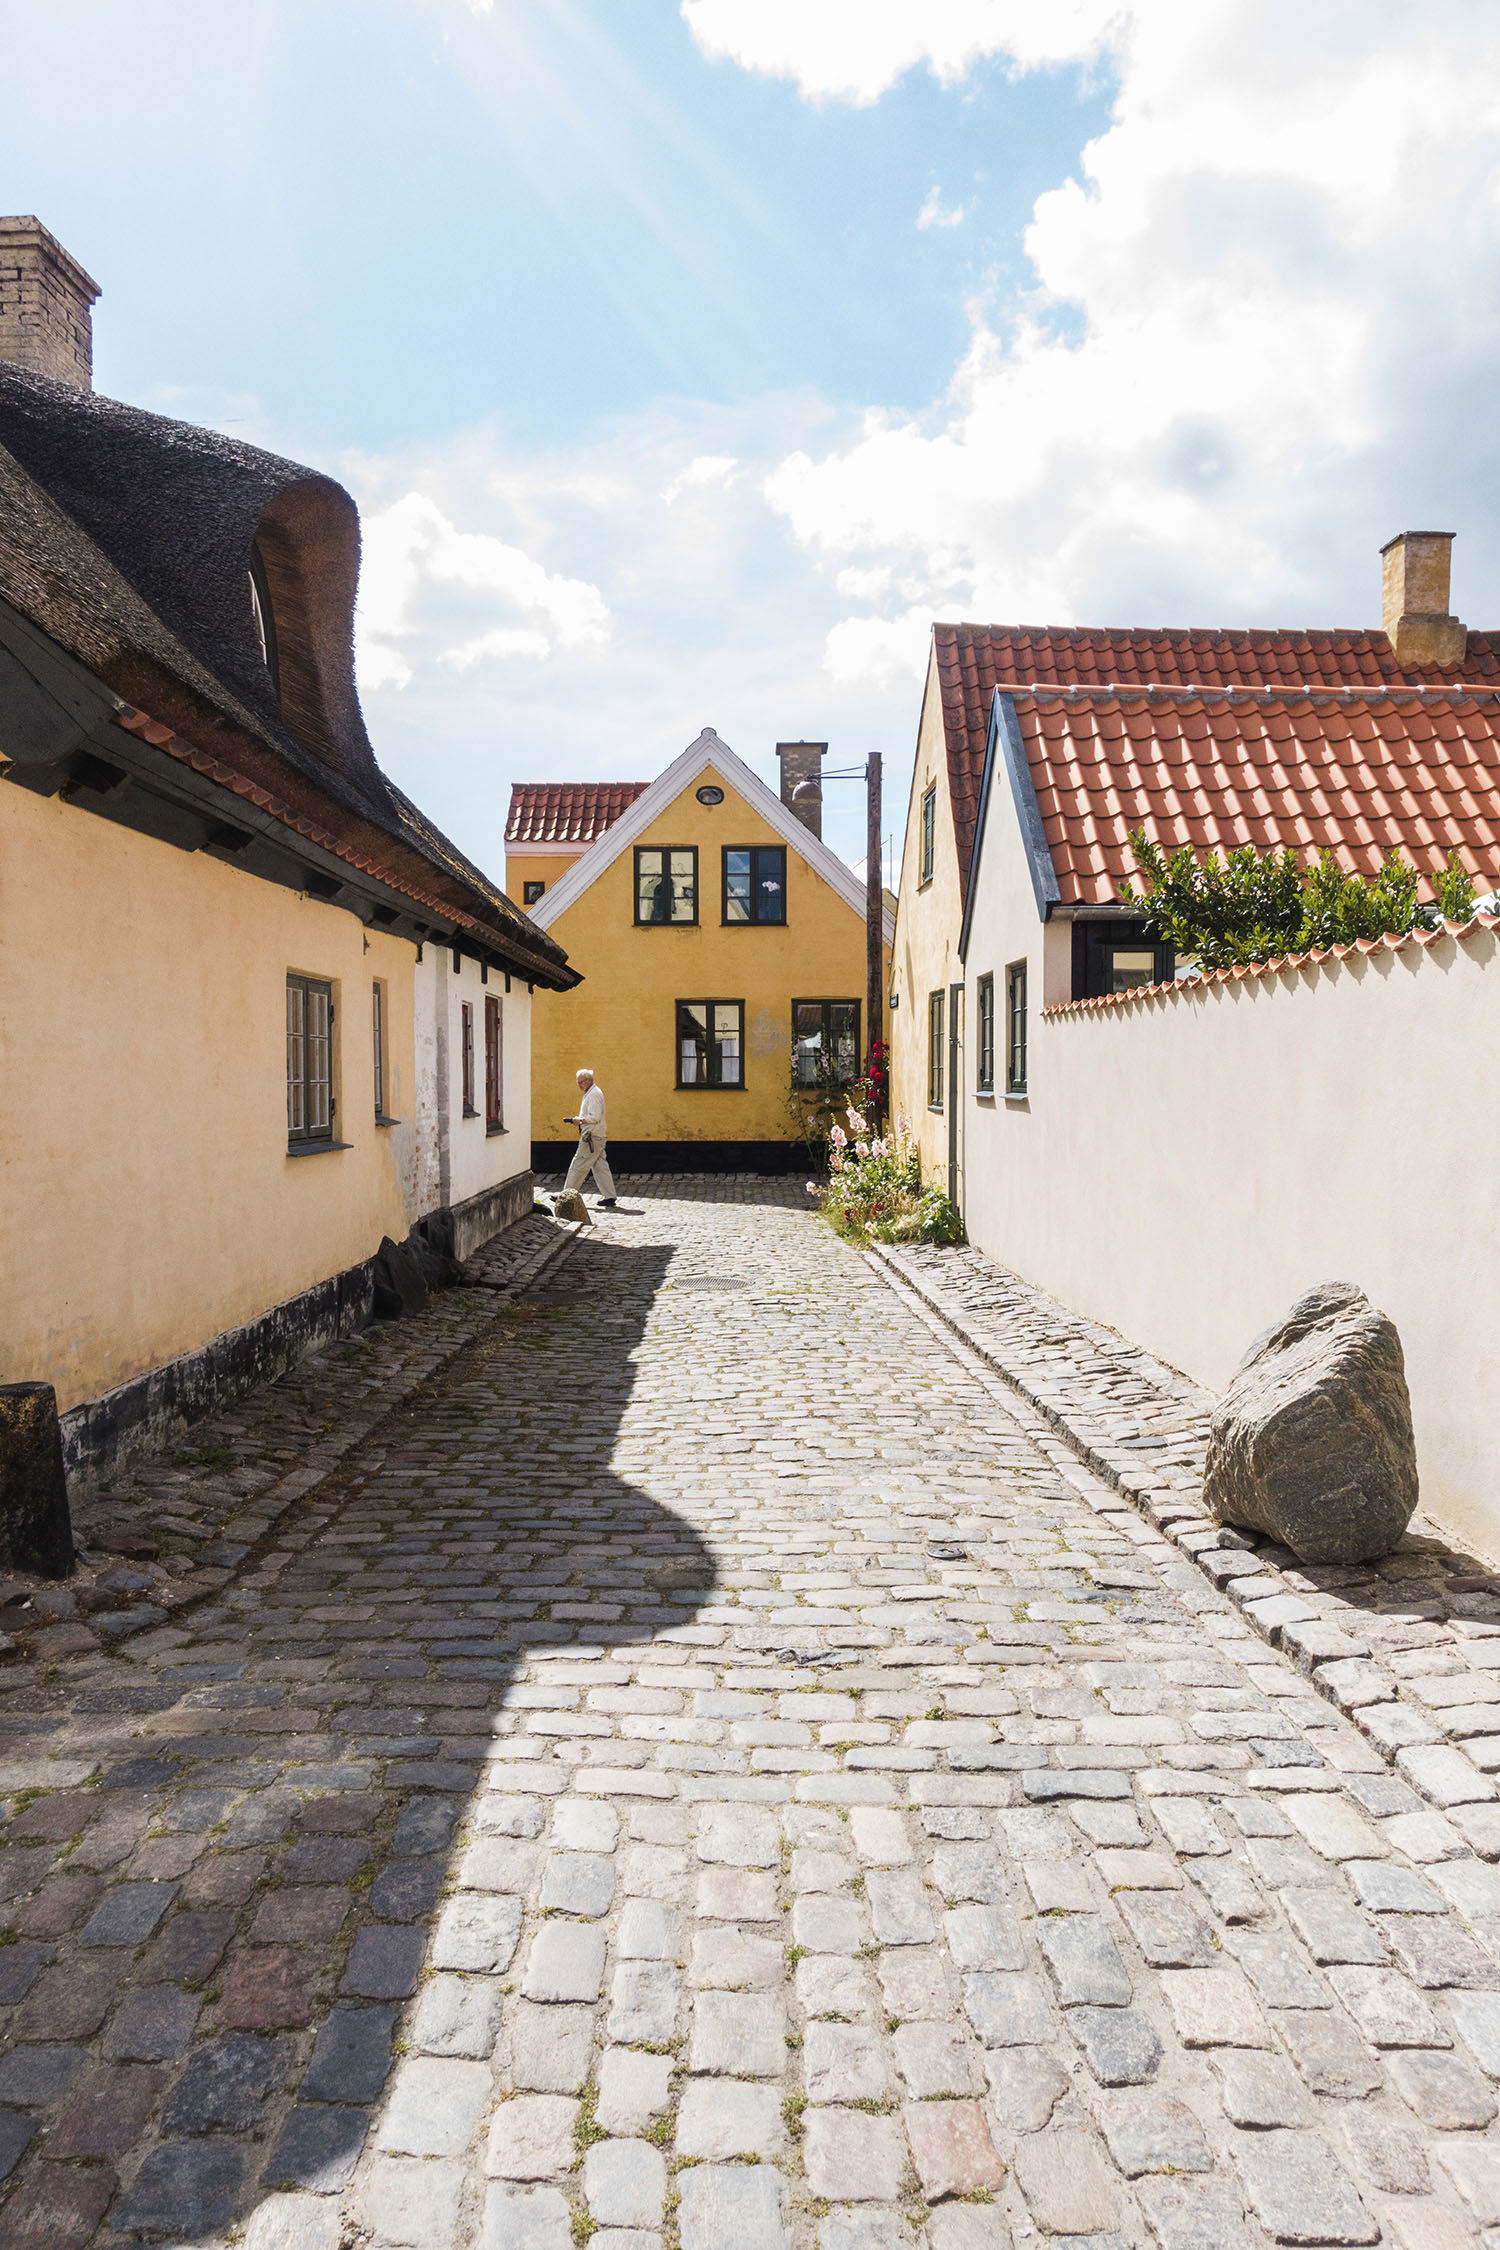 Dragør_130717_HelenaLundquist_18.small